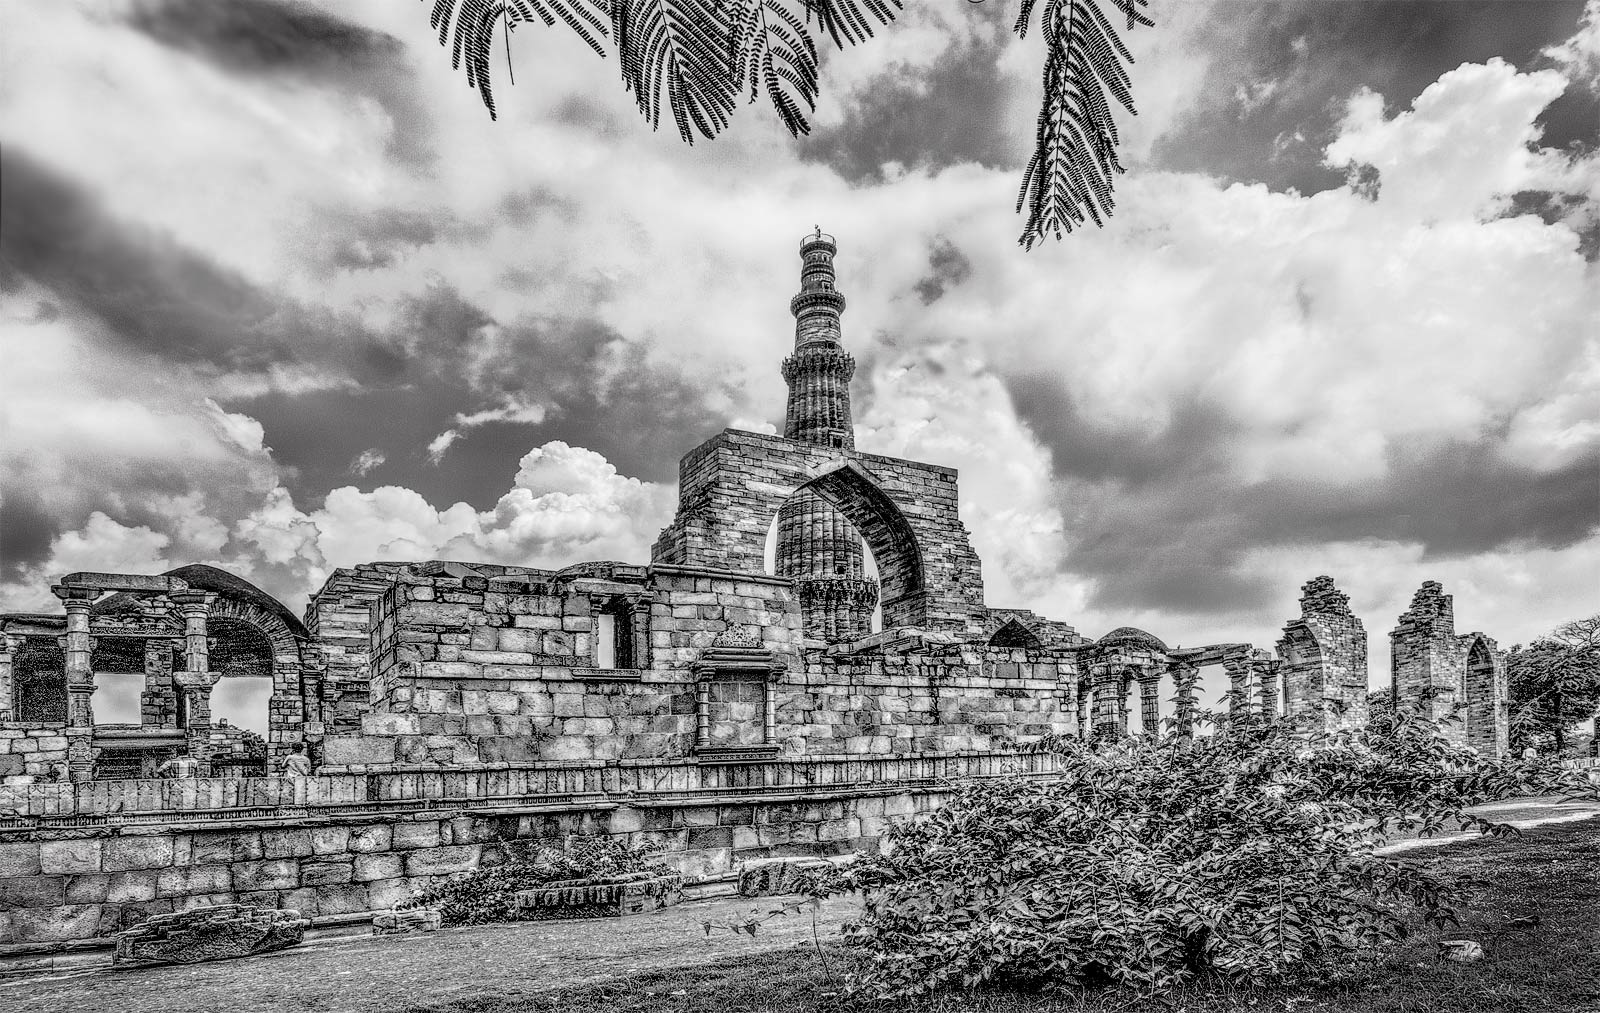 Qutub minar gurgaon black and white